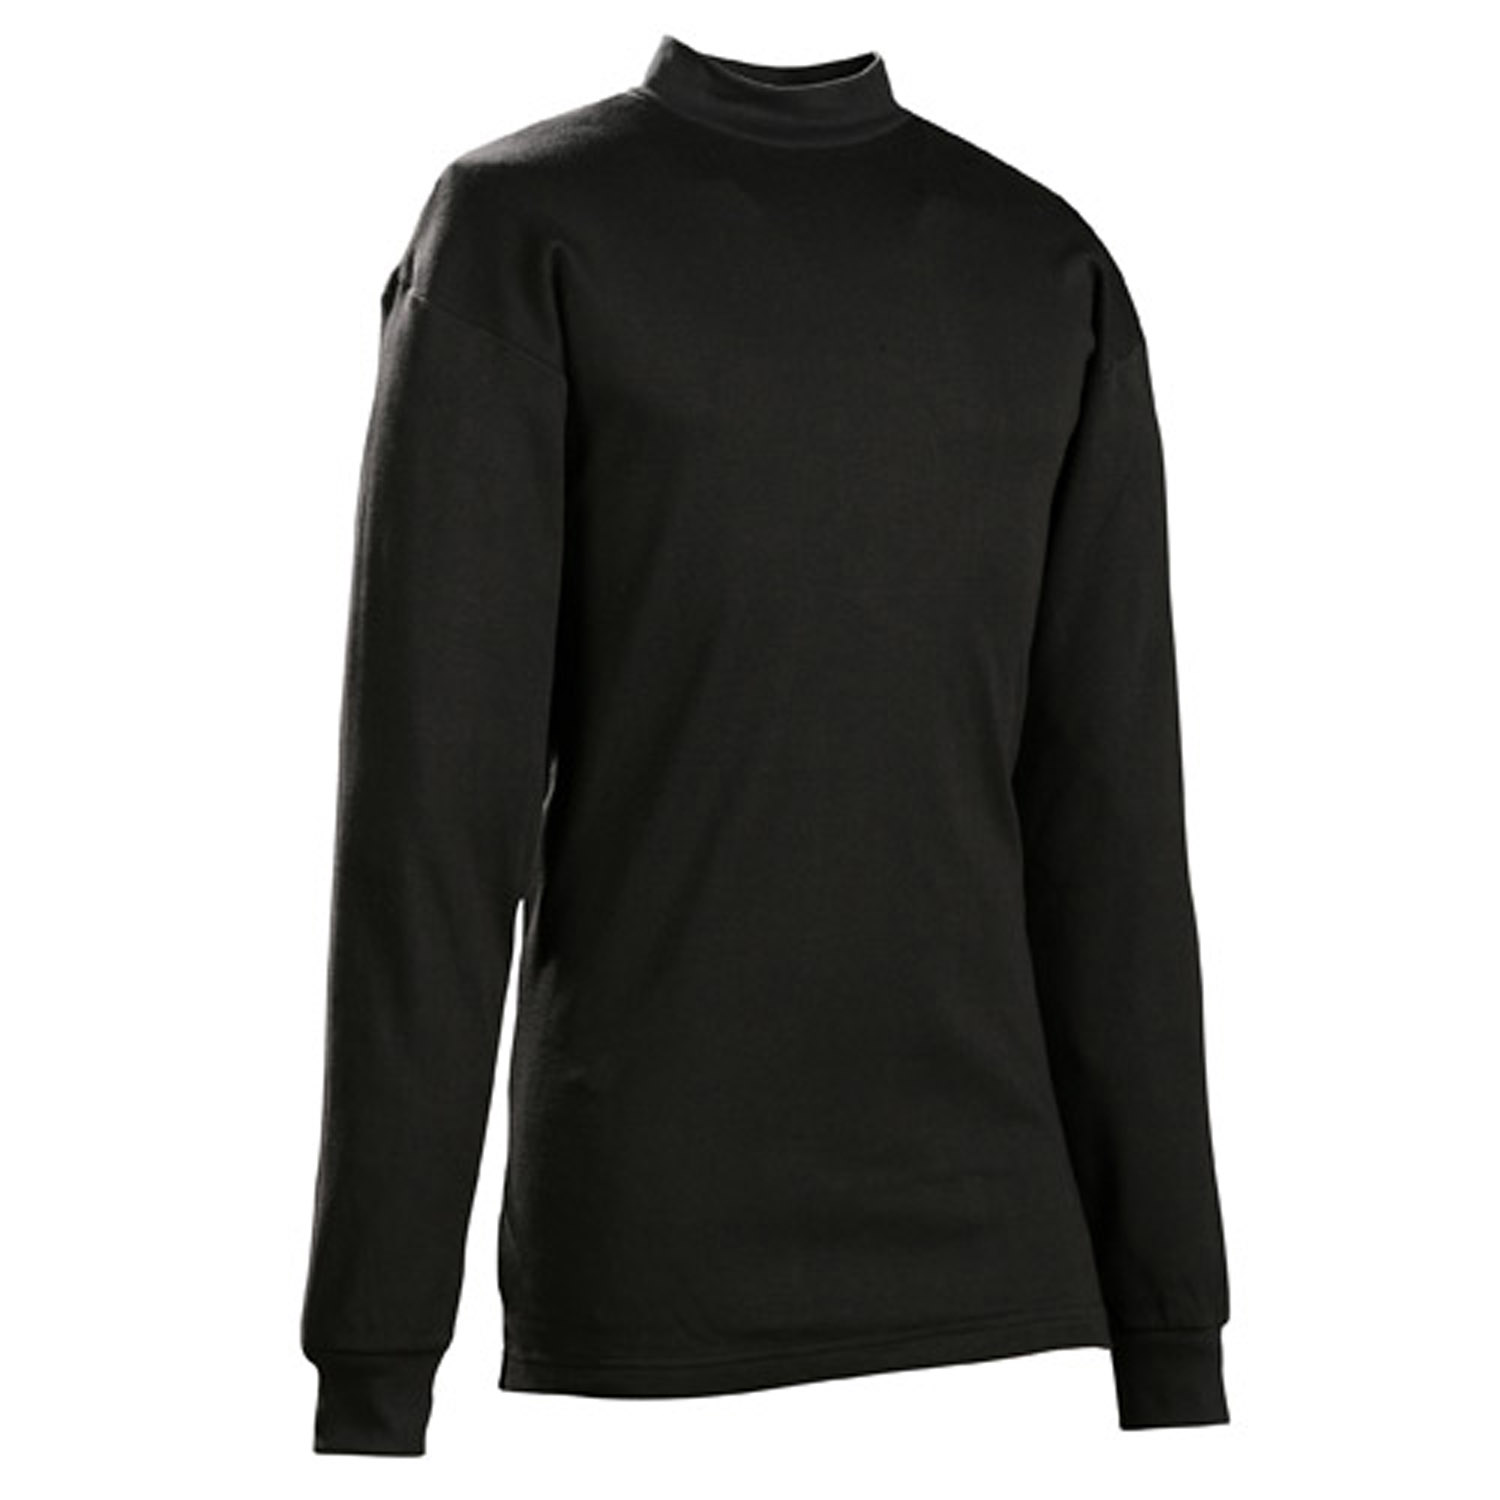 Galls Long Sleeve Classic Mock Turtleneck